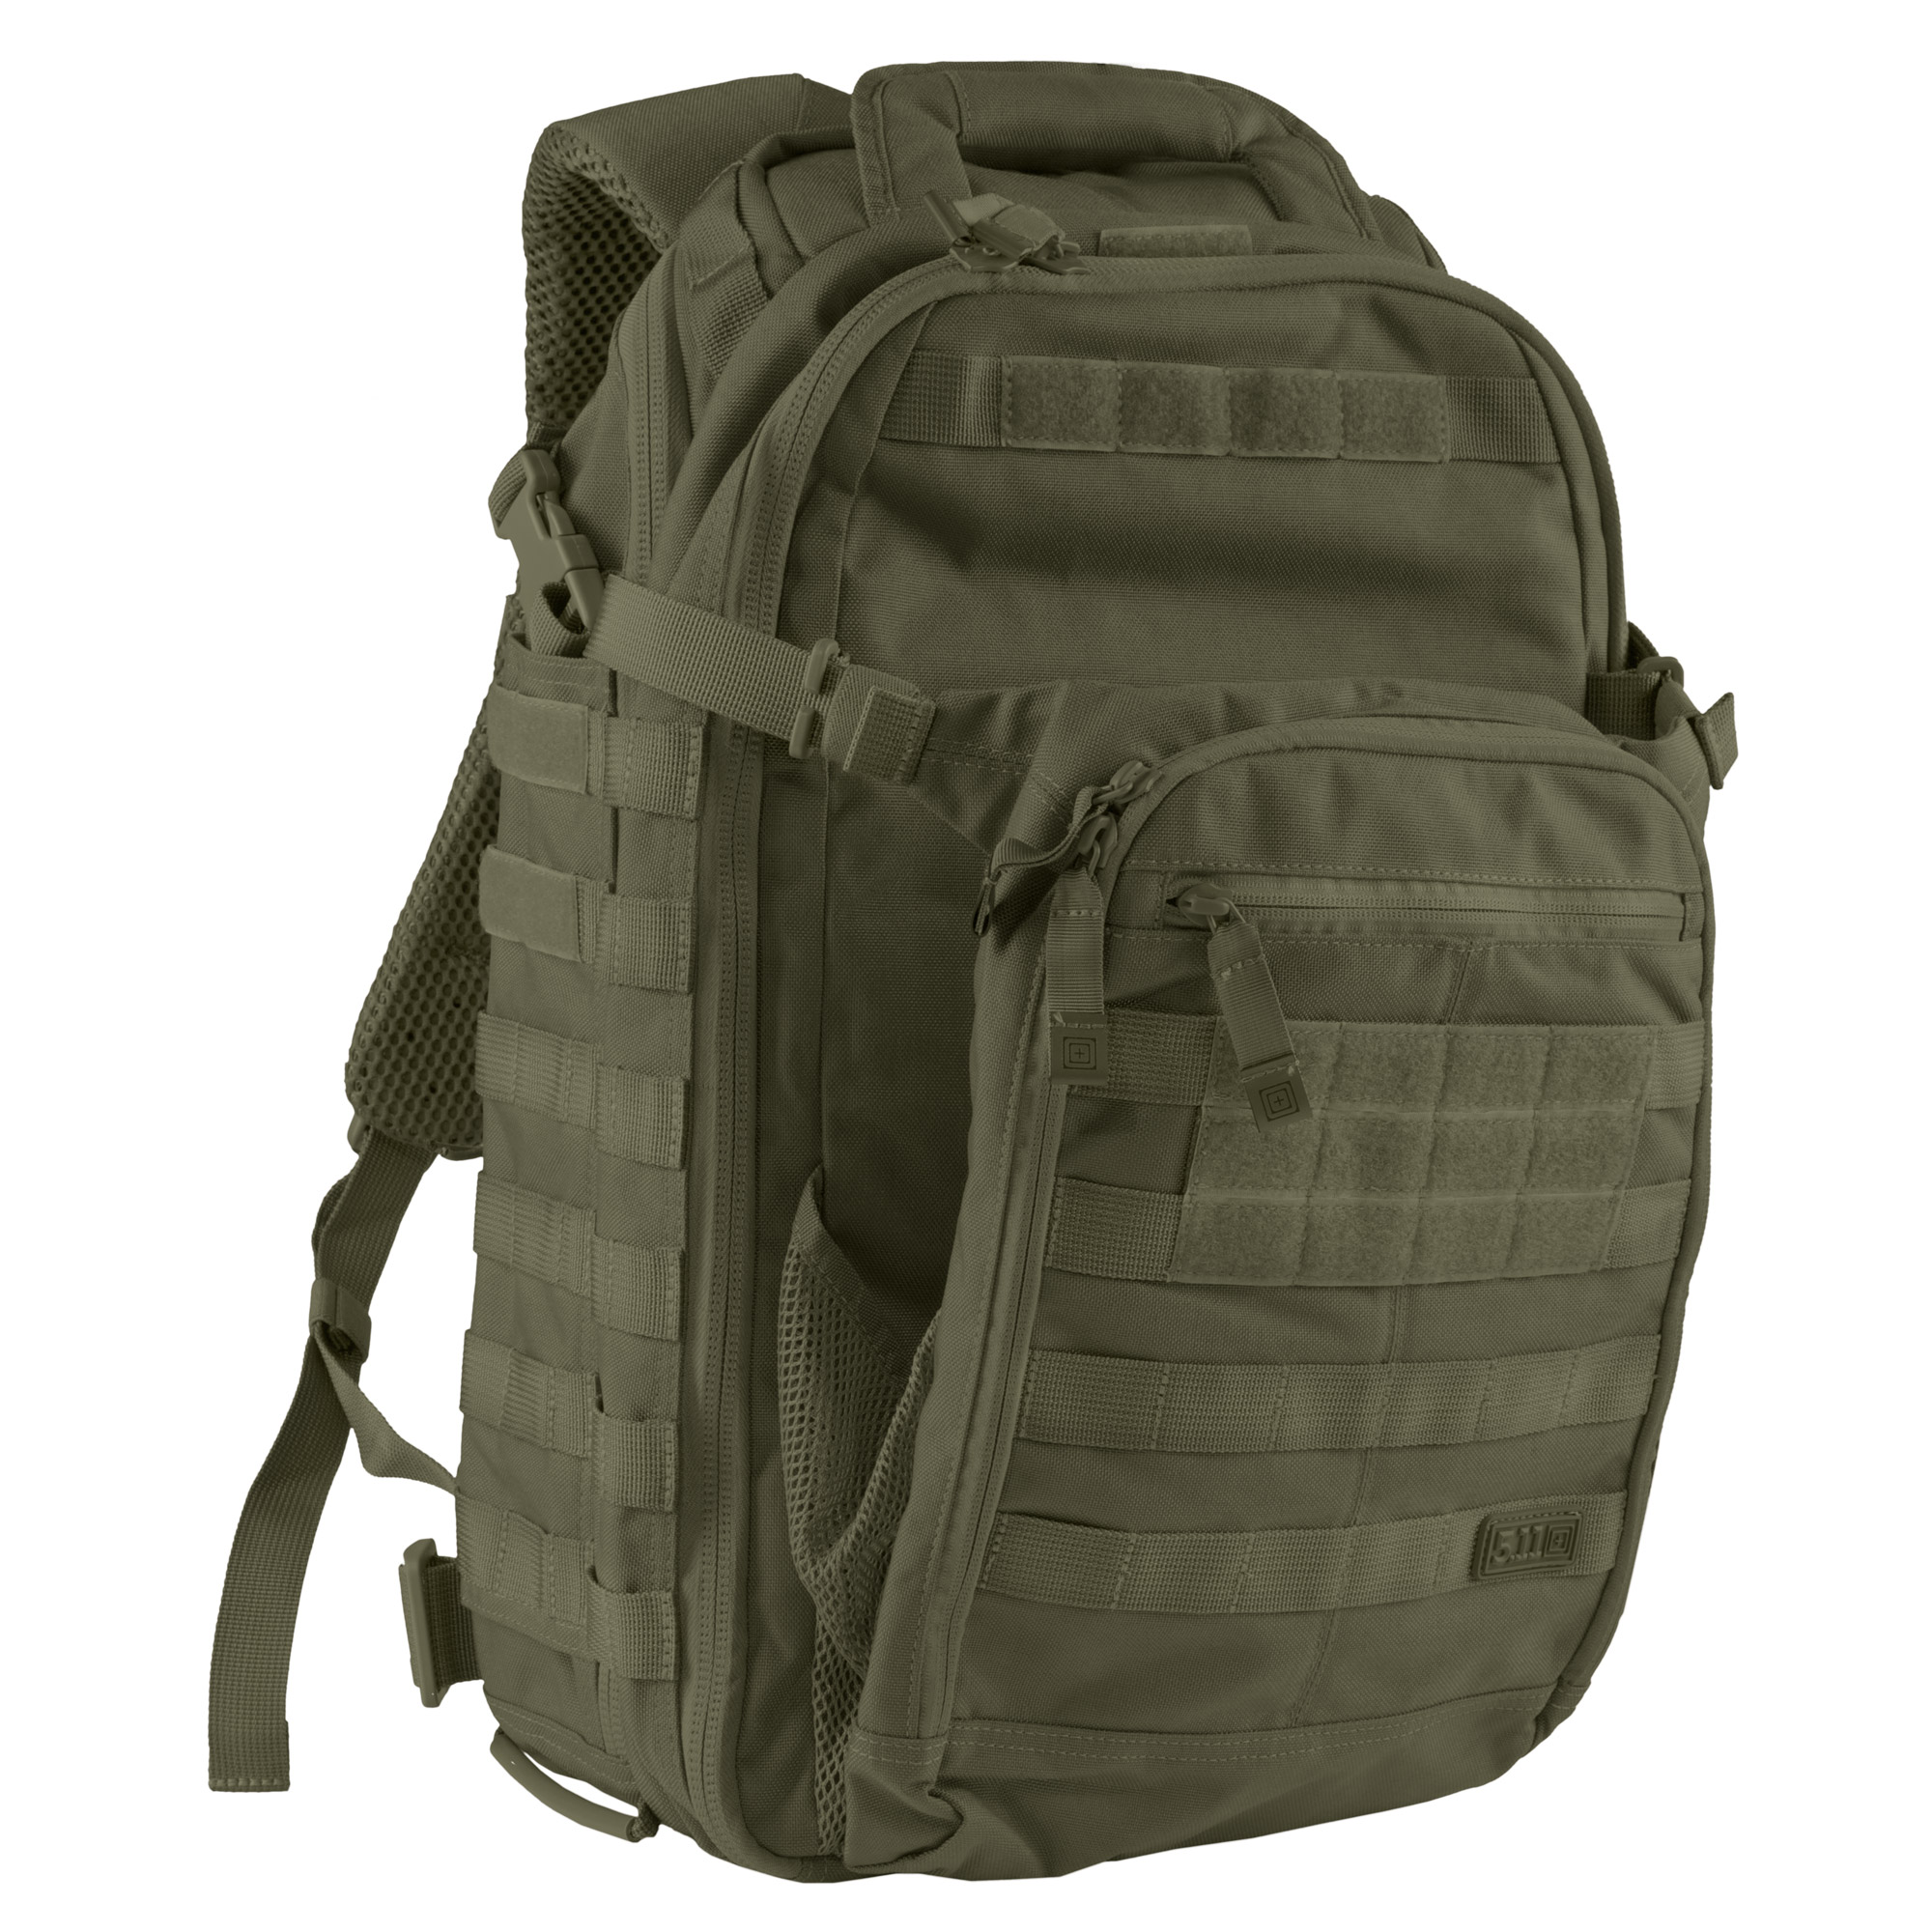 5.11 All Hazards Prime Backpack - Tac OD